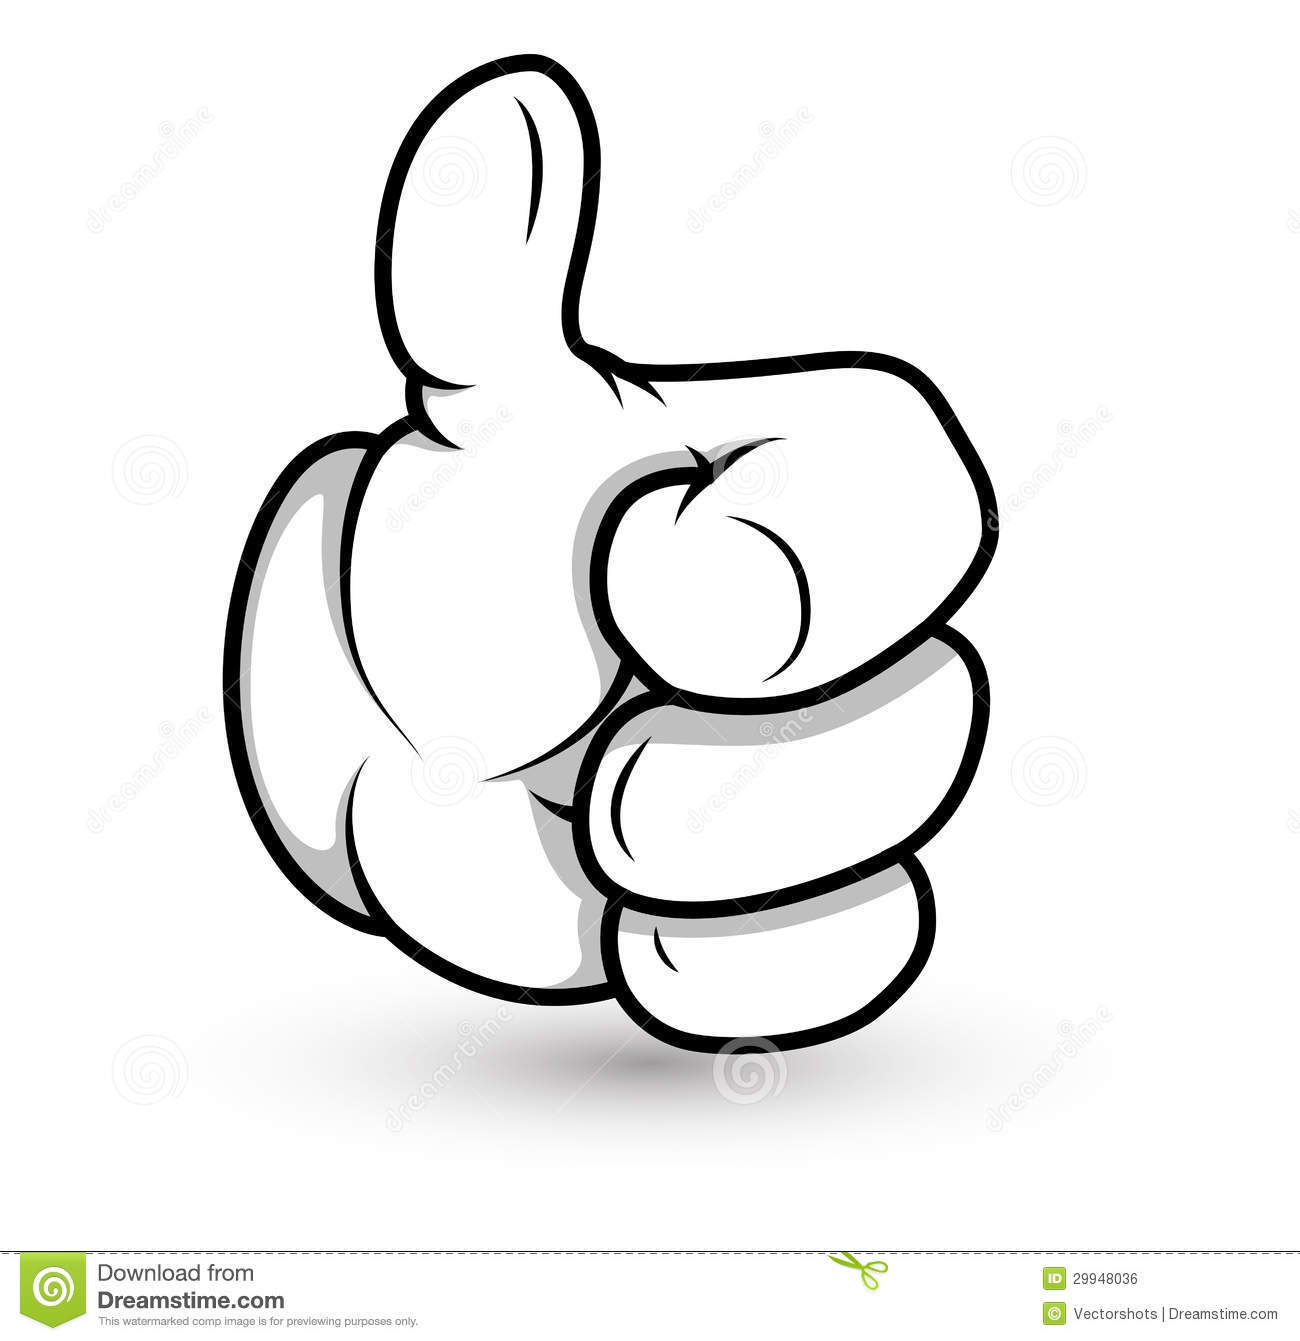 Cartoon Hand - Thumbs Up- Vector Illustration Royalty Free Stock Image ...